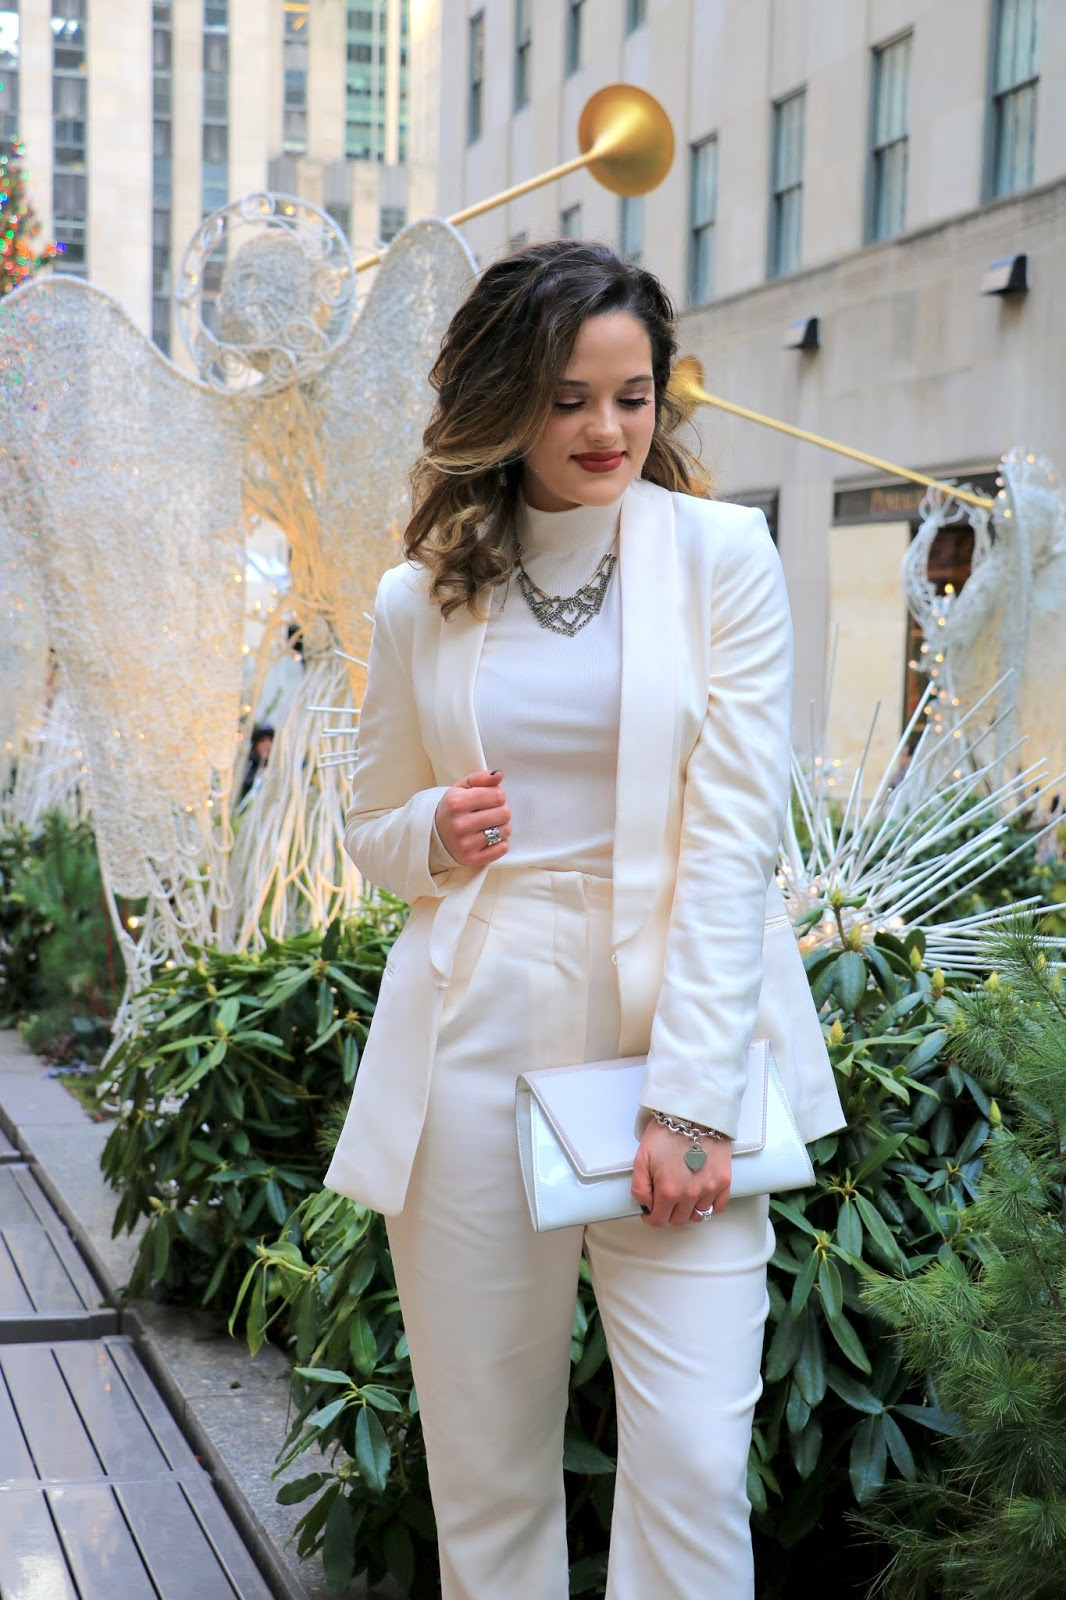 Nyc fashion blogger Kathleen Harper wearing a holiday suit.